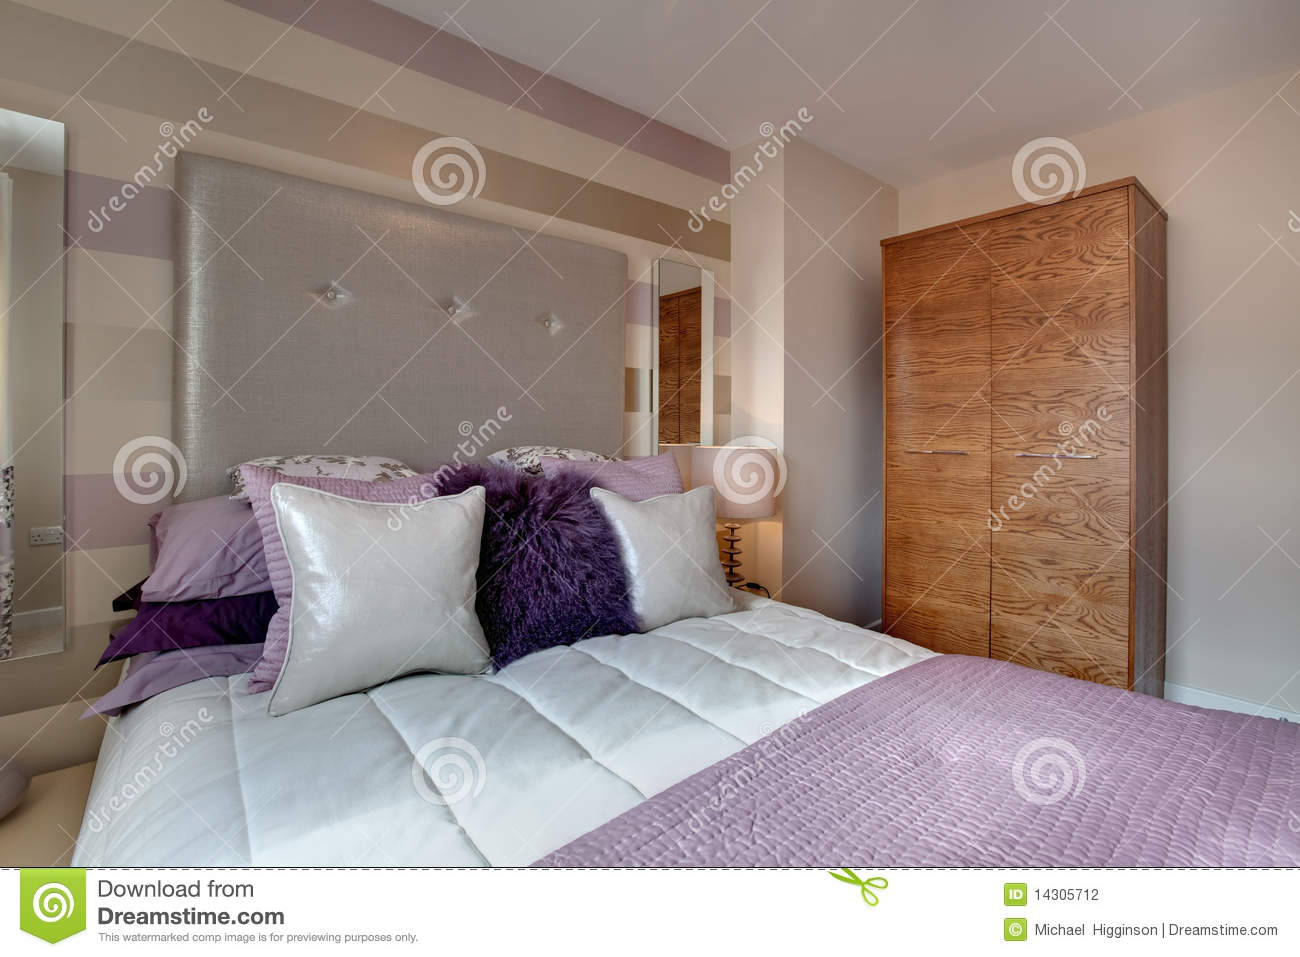 Chambre coucher moderne opulente photographie stock for Chombre a coucher moderne